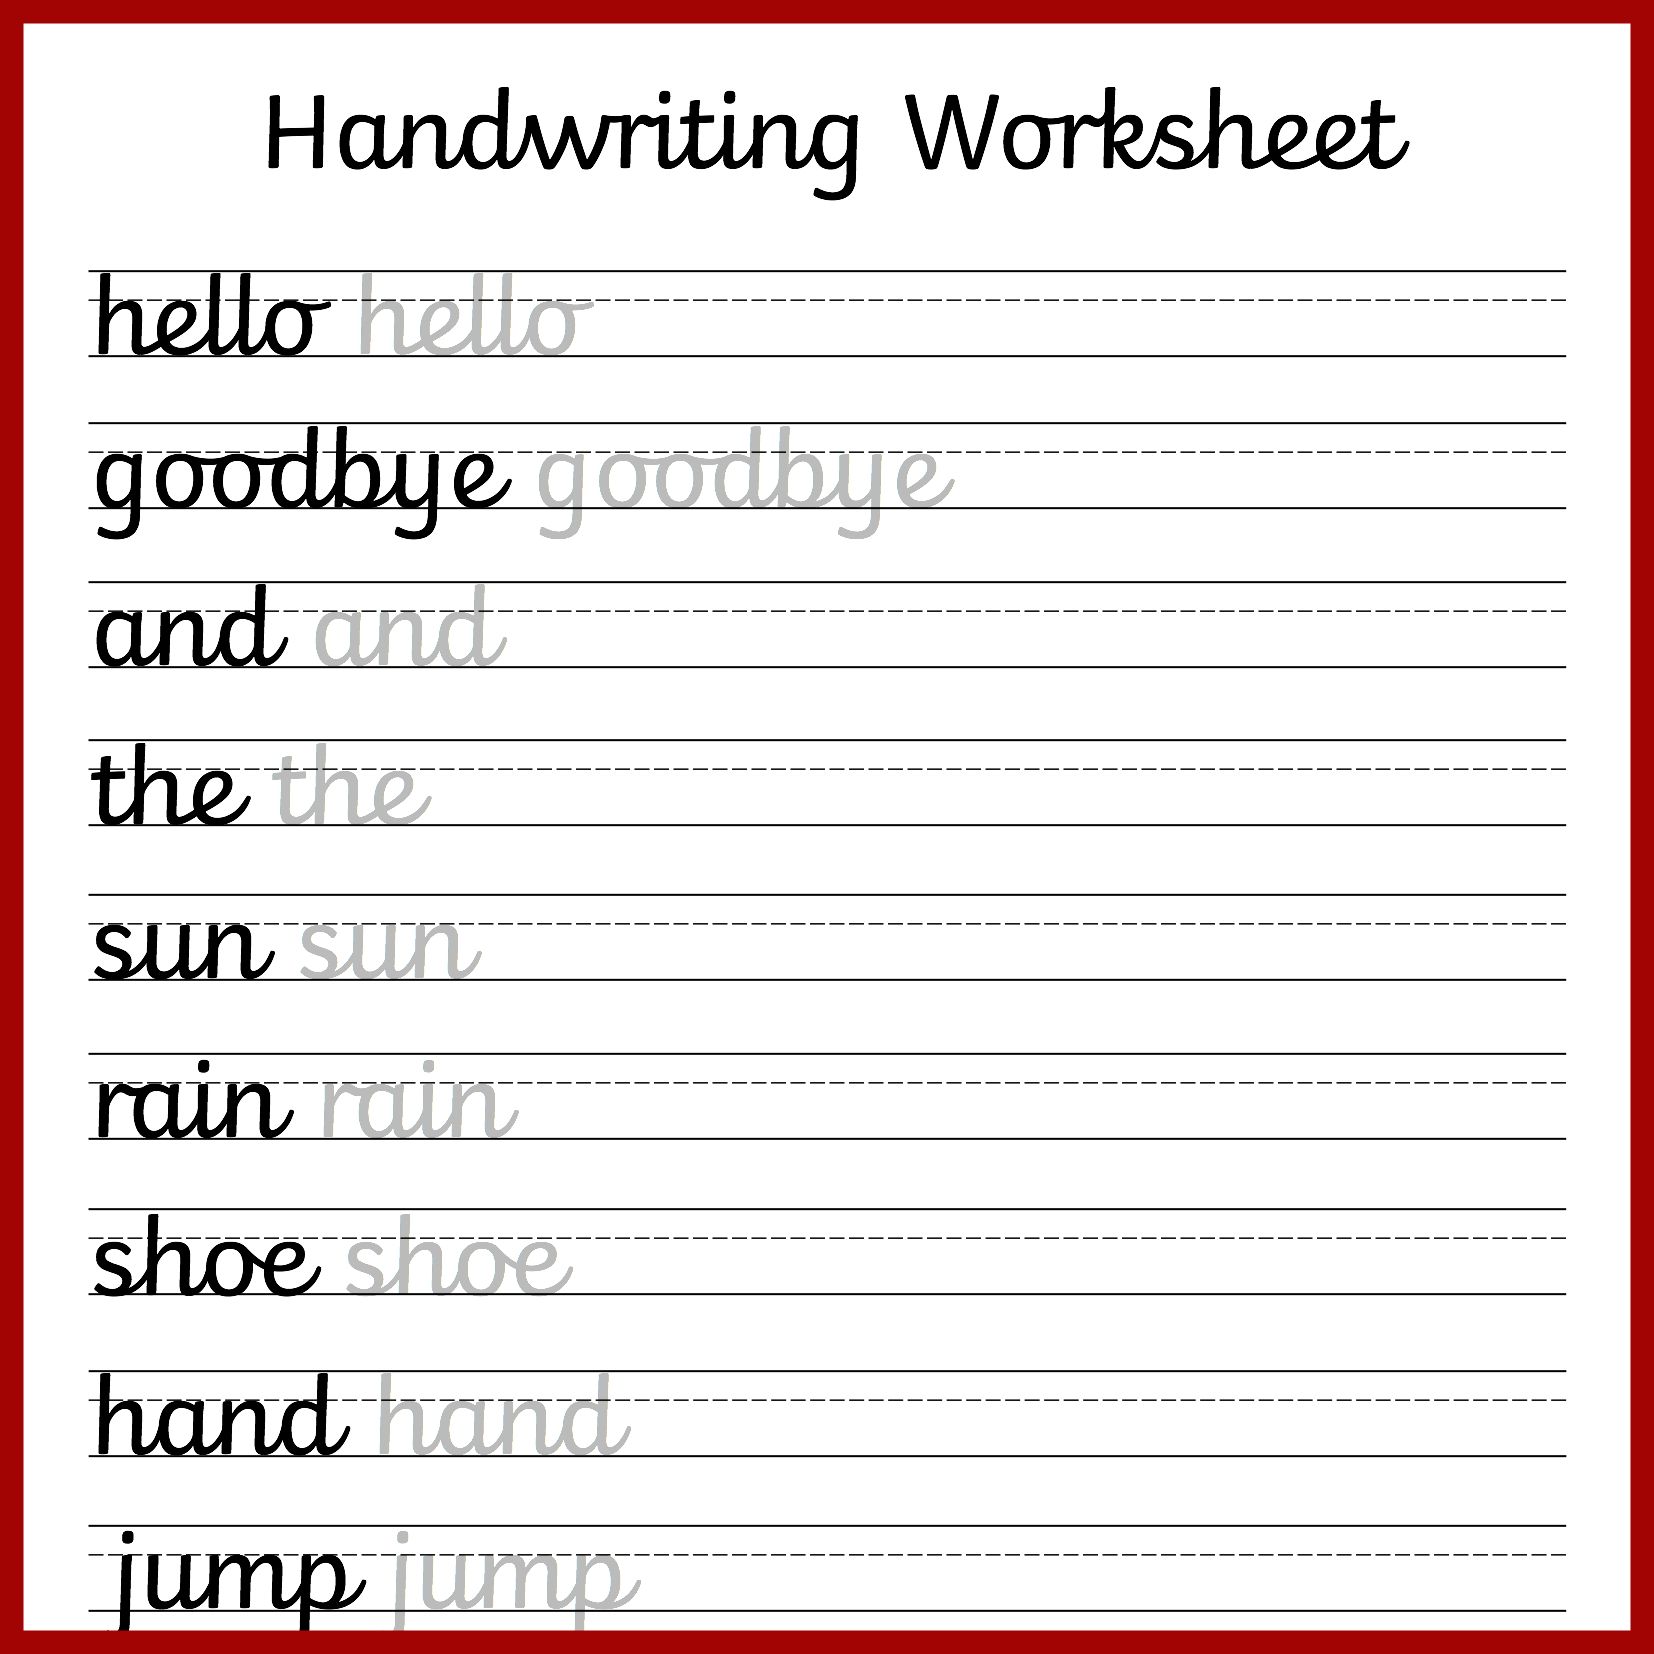 Cursive Handwriting Worksheets – Free Printable! ⋆ Mama Geek - Make Your Own Worksheets Free Printable